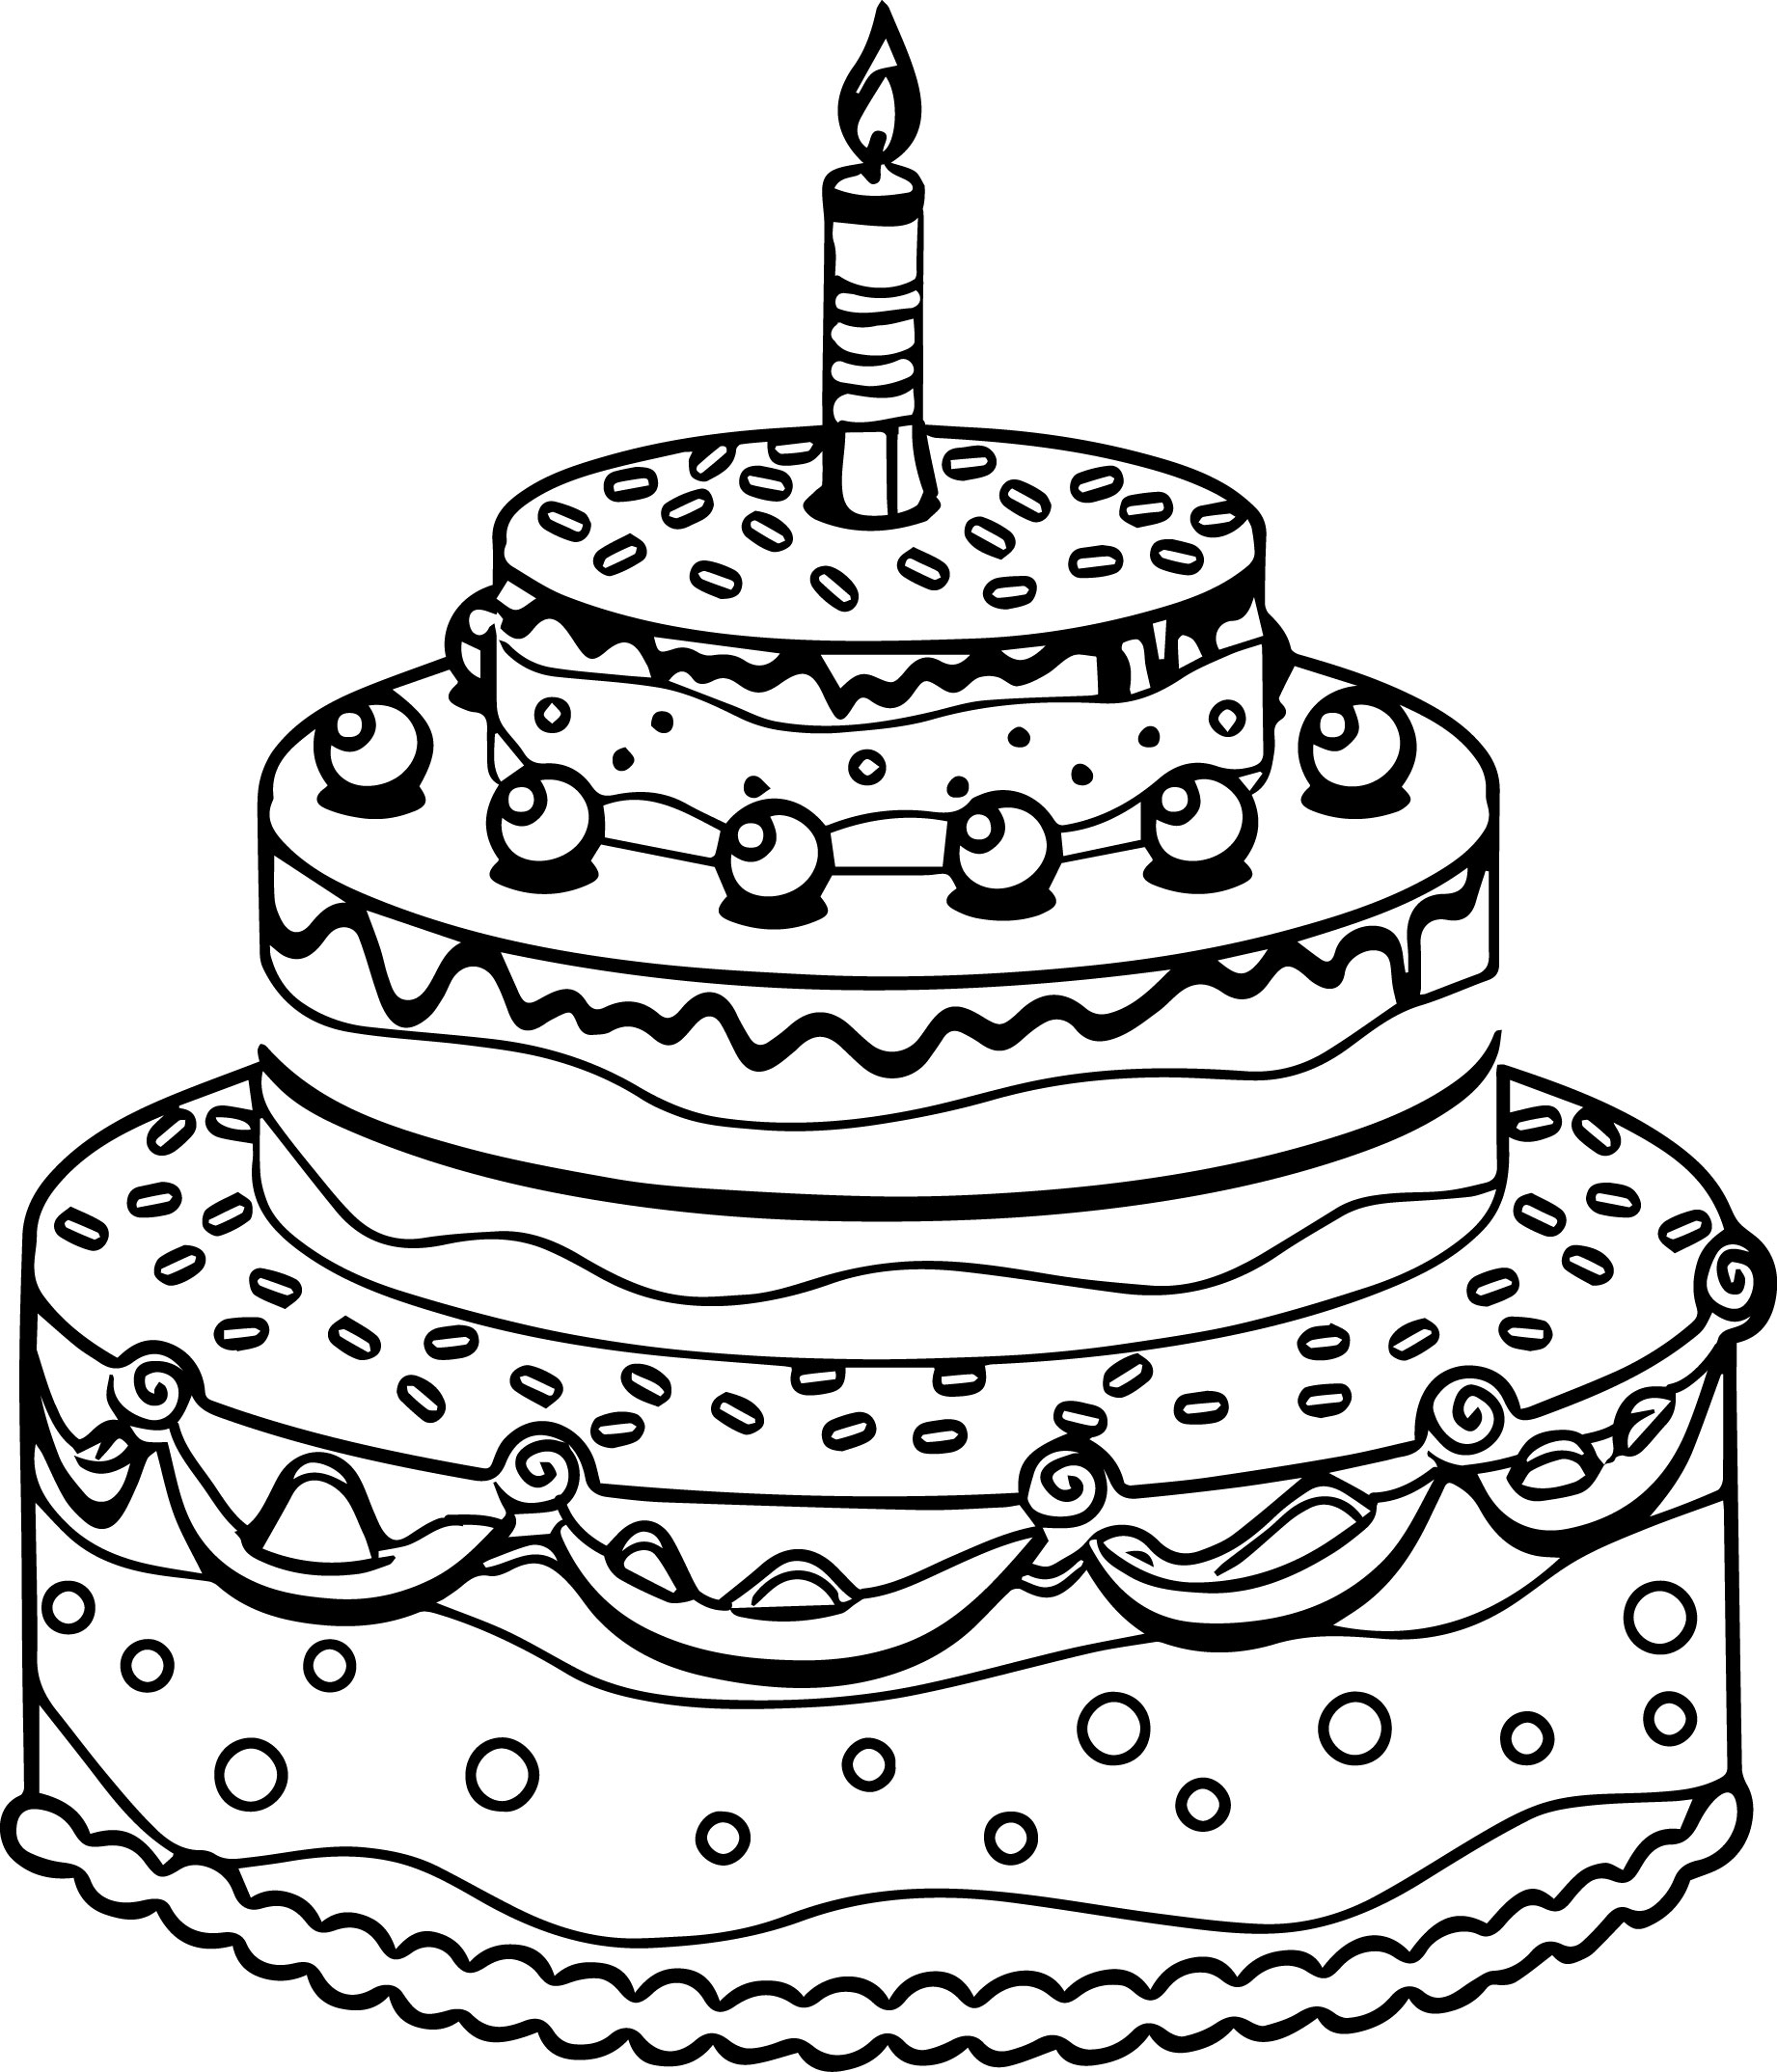 coloring cake pages free printable birthday cake coloring pages for kids cake pages coloring